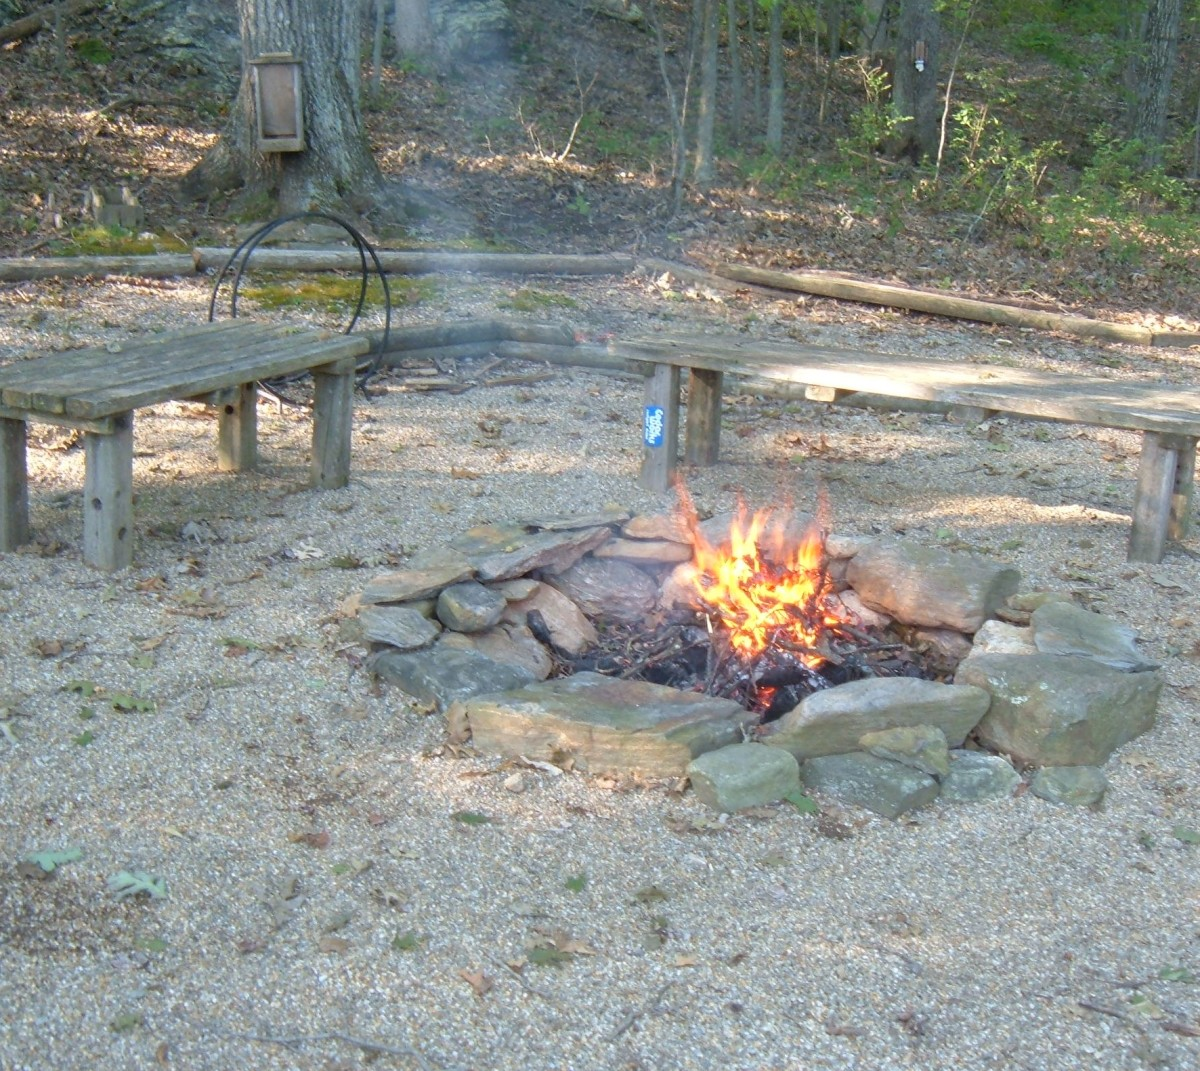 The fire pit is a favorite family gathering space